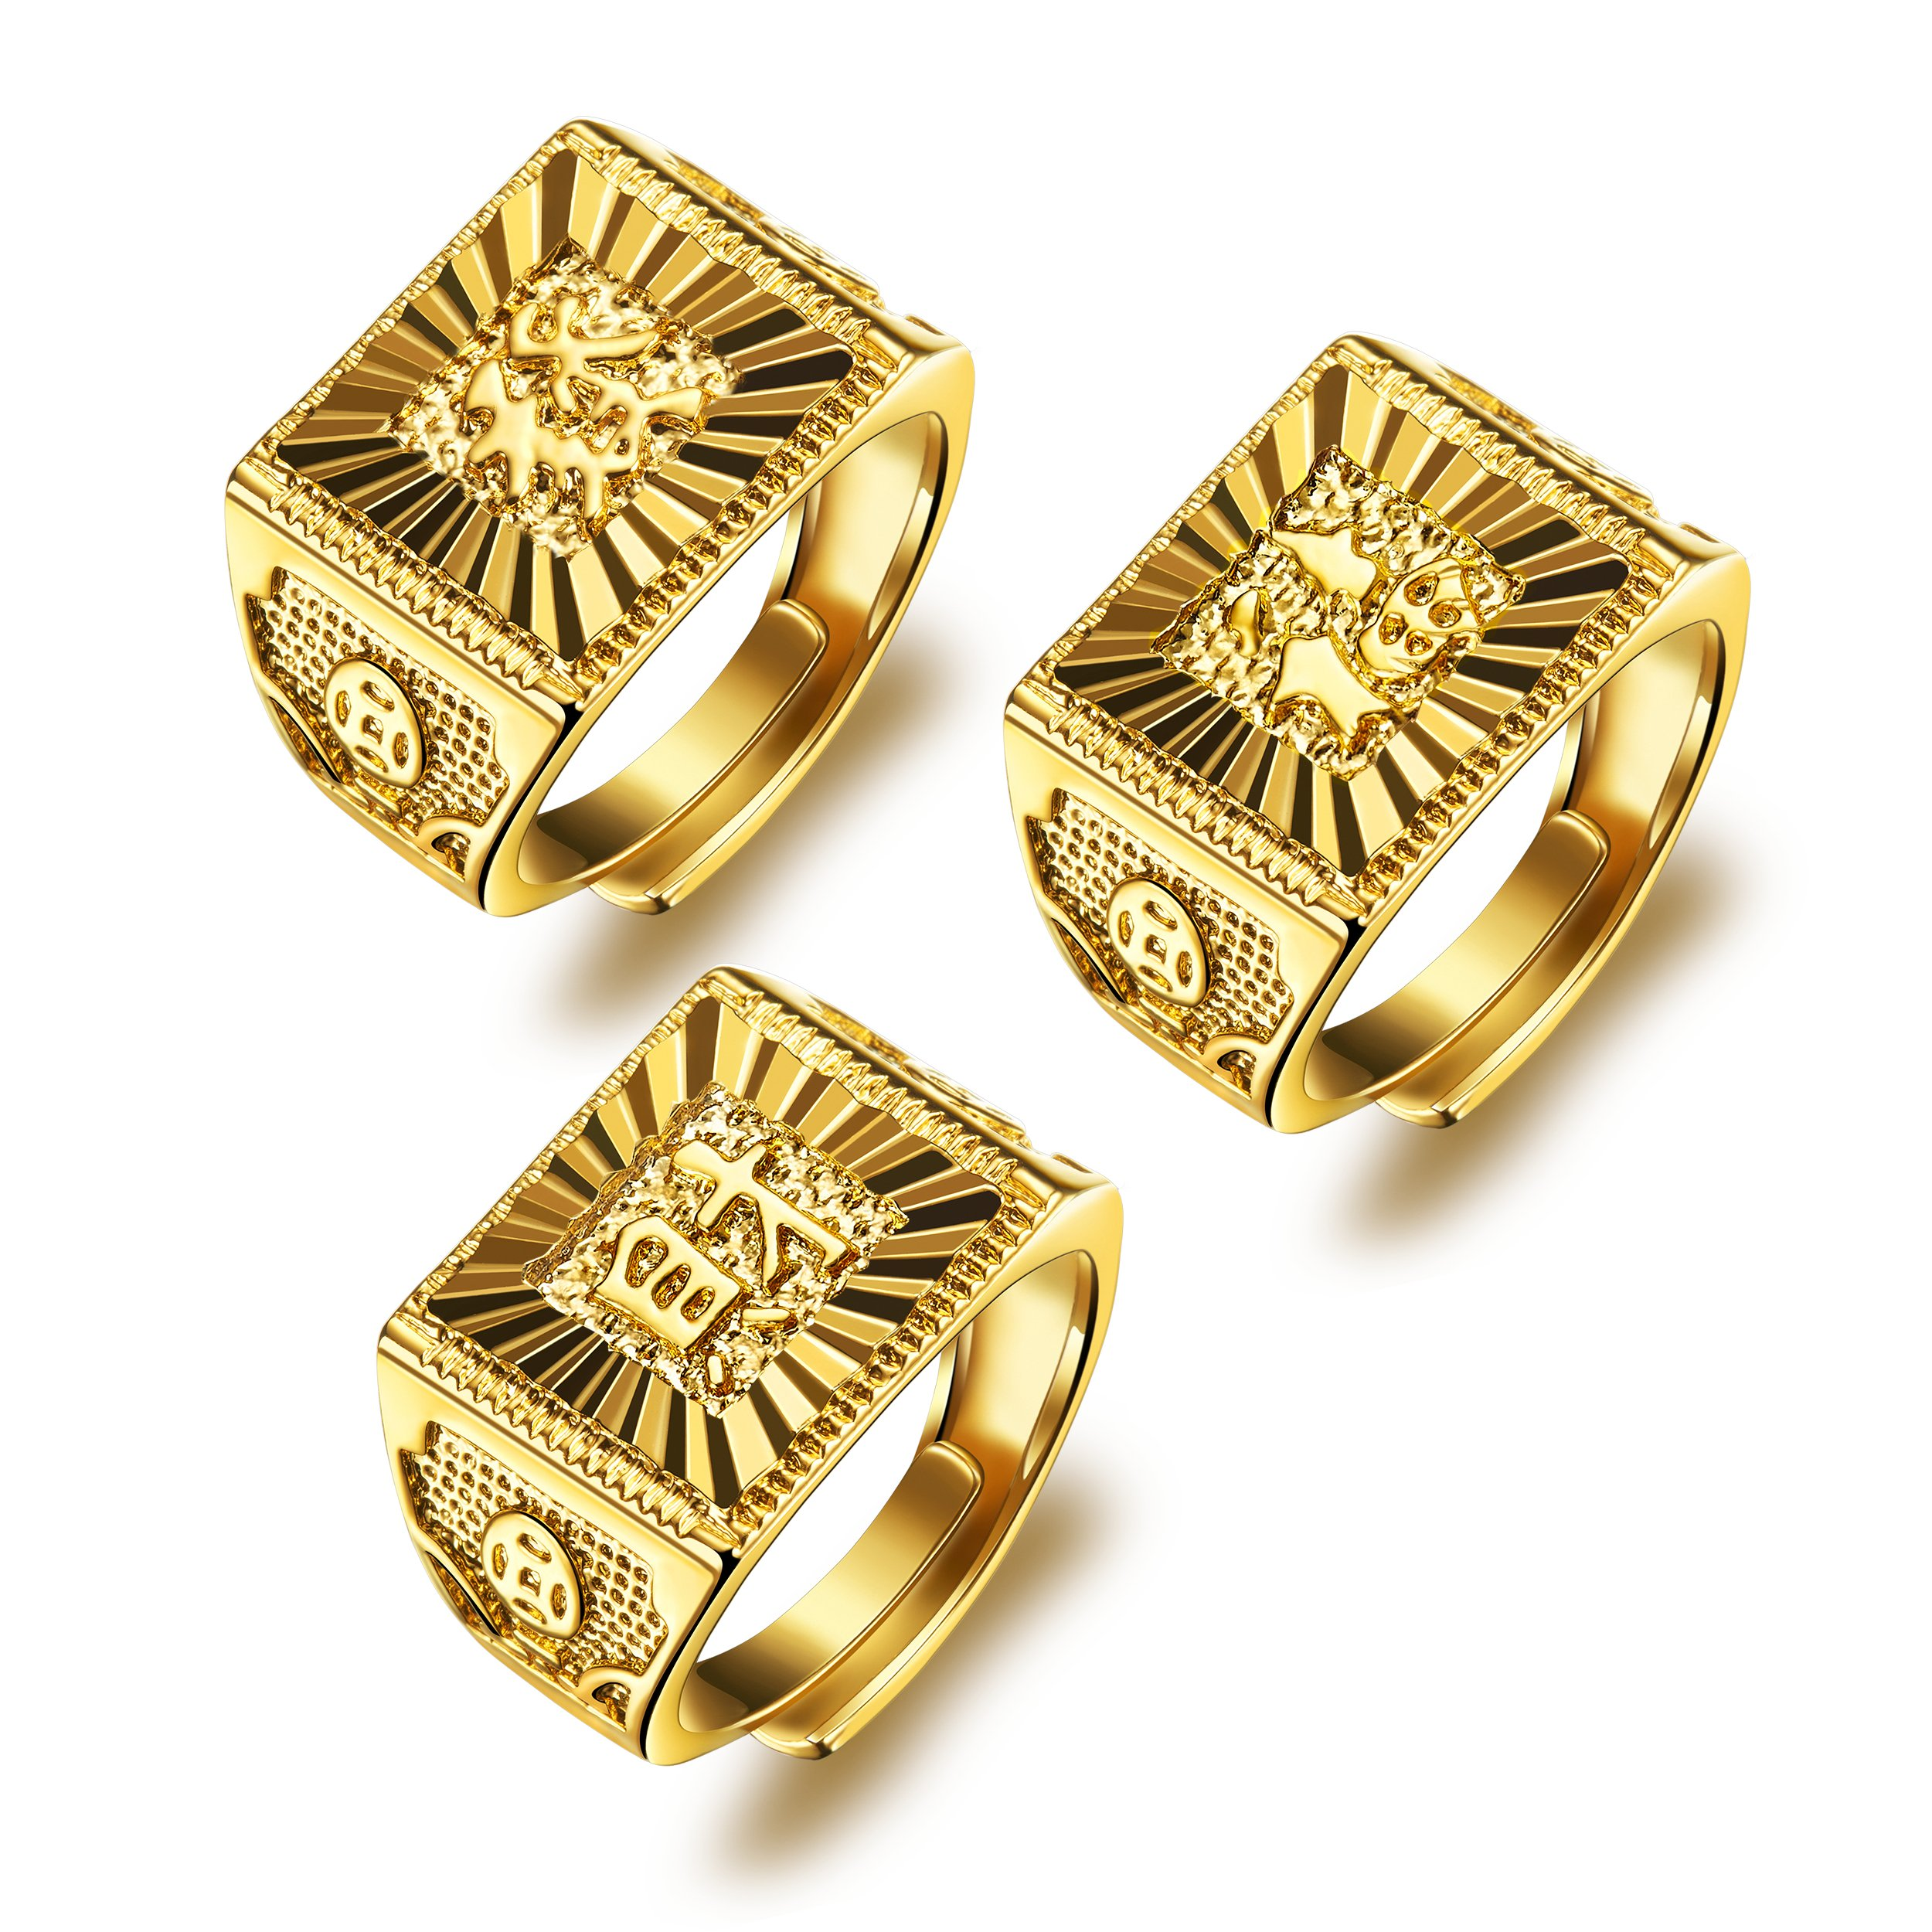 Men's Gold Ring 18K Gold Plated Luxurious Shiny DO NOT FADE ''GOLDEN RICH'' Ring Size Adjustable (Gold Ring 3PCS)